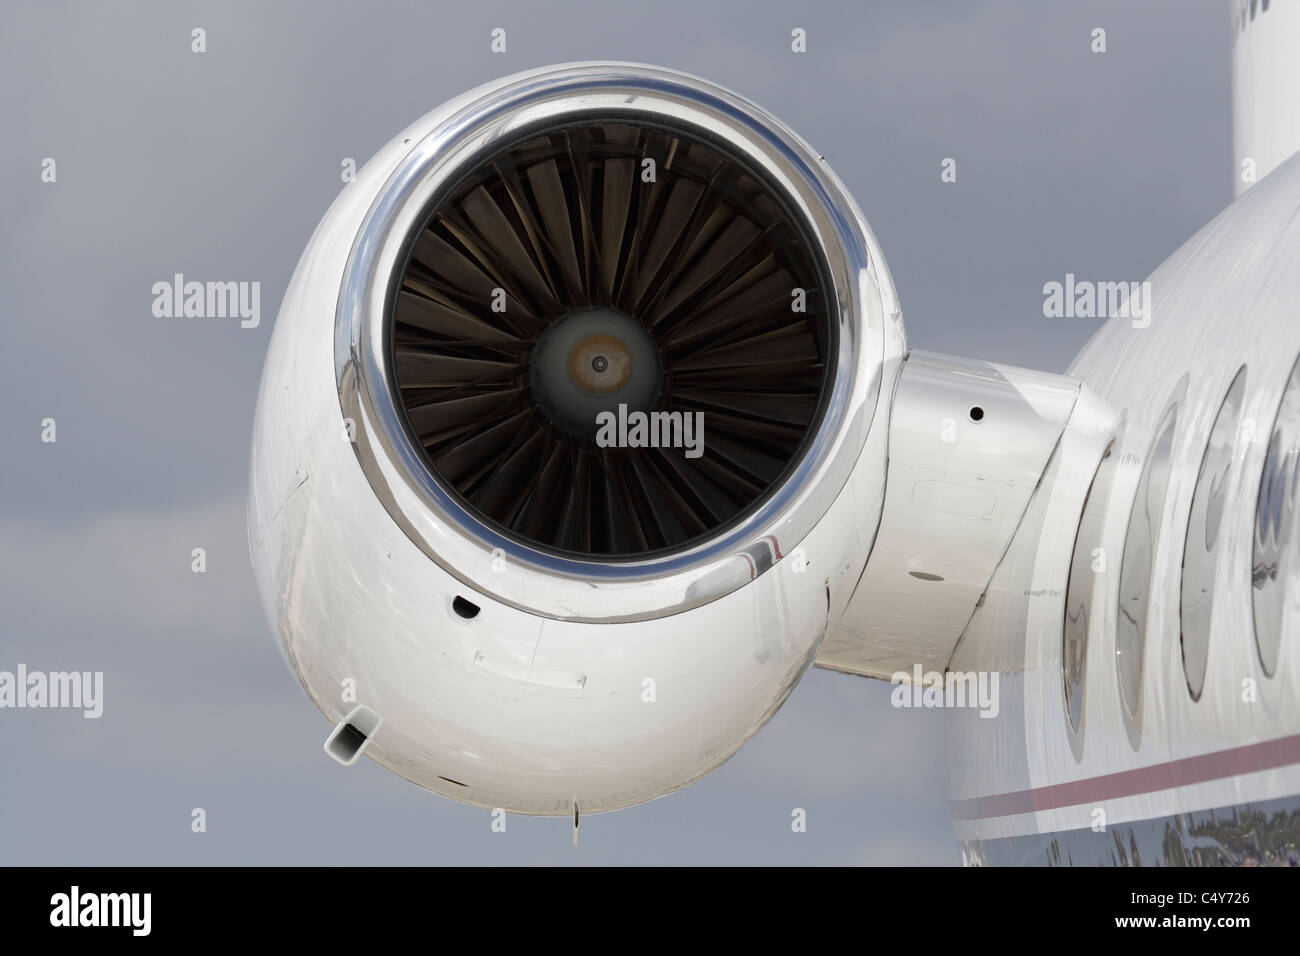 Closeup of a turbofan jet engine on a private jet. No proprietary details visible. - Stock Image